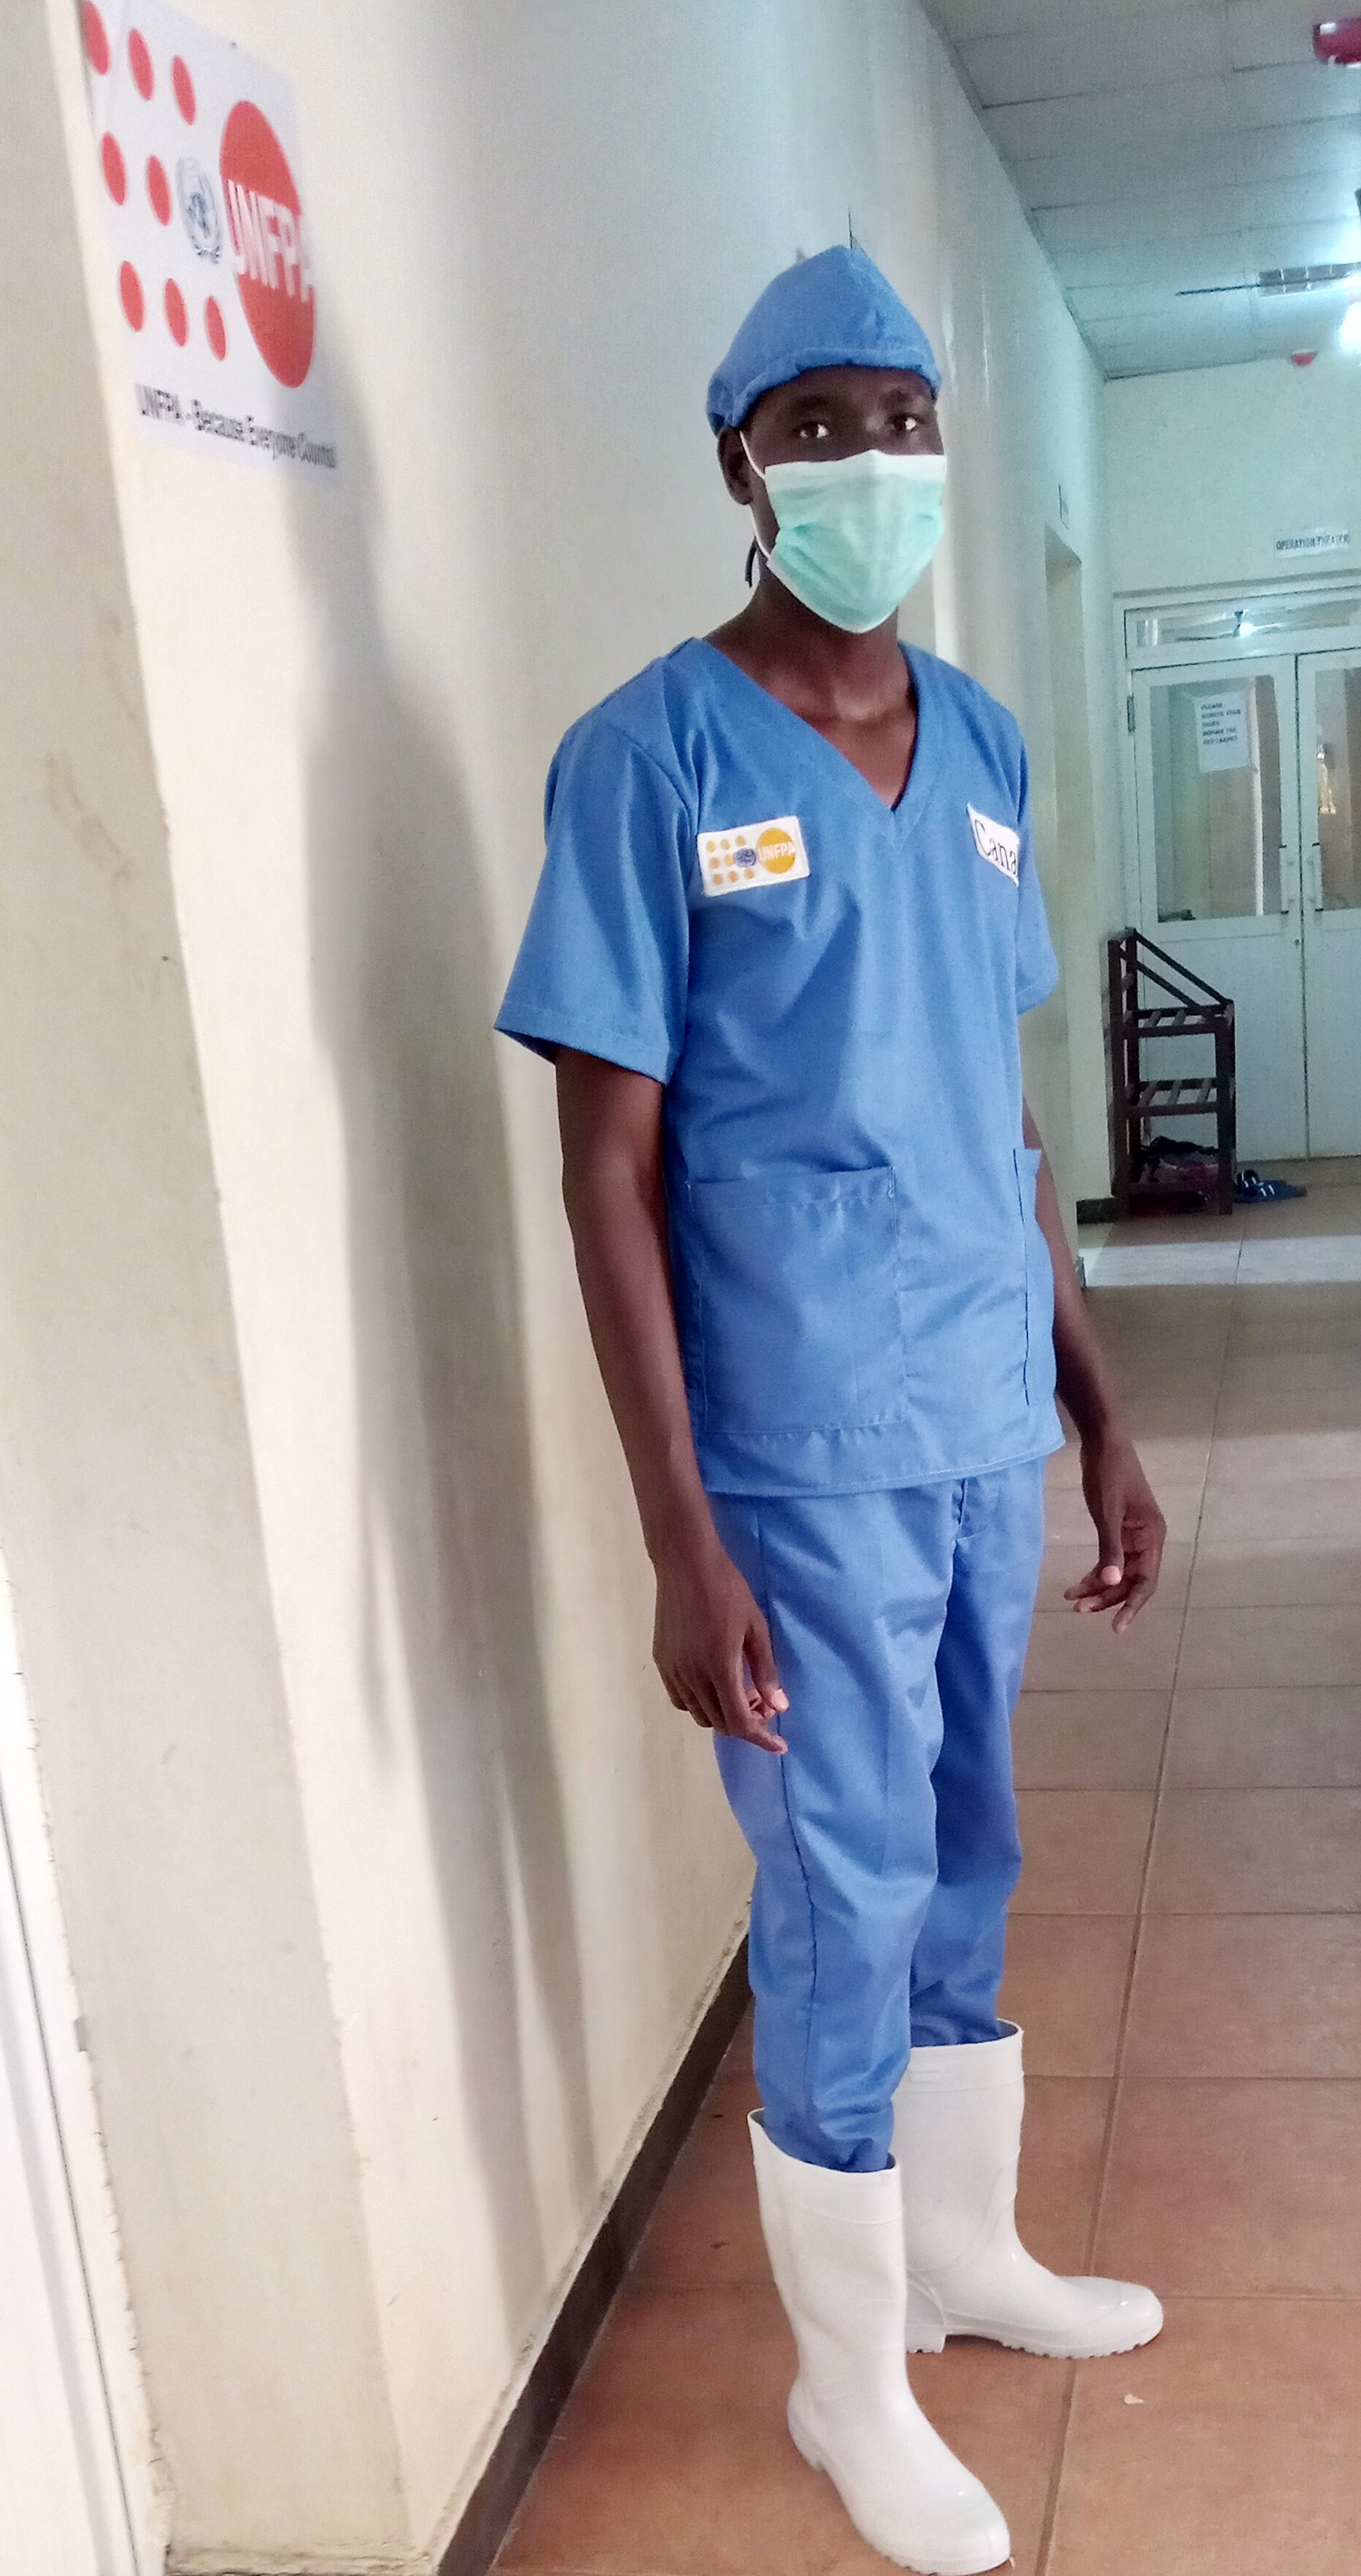 Mr. Mangwi suited up for the delivery room at Torit State Hospital.